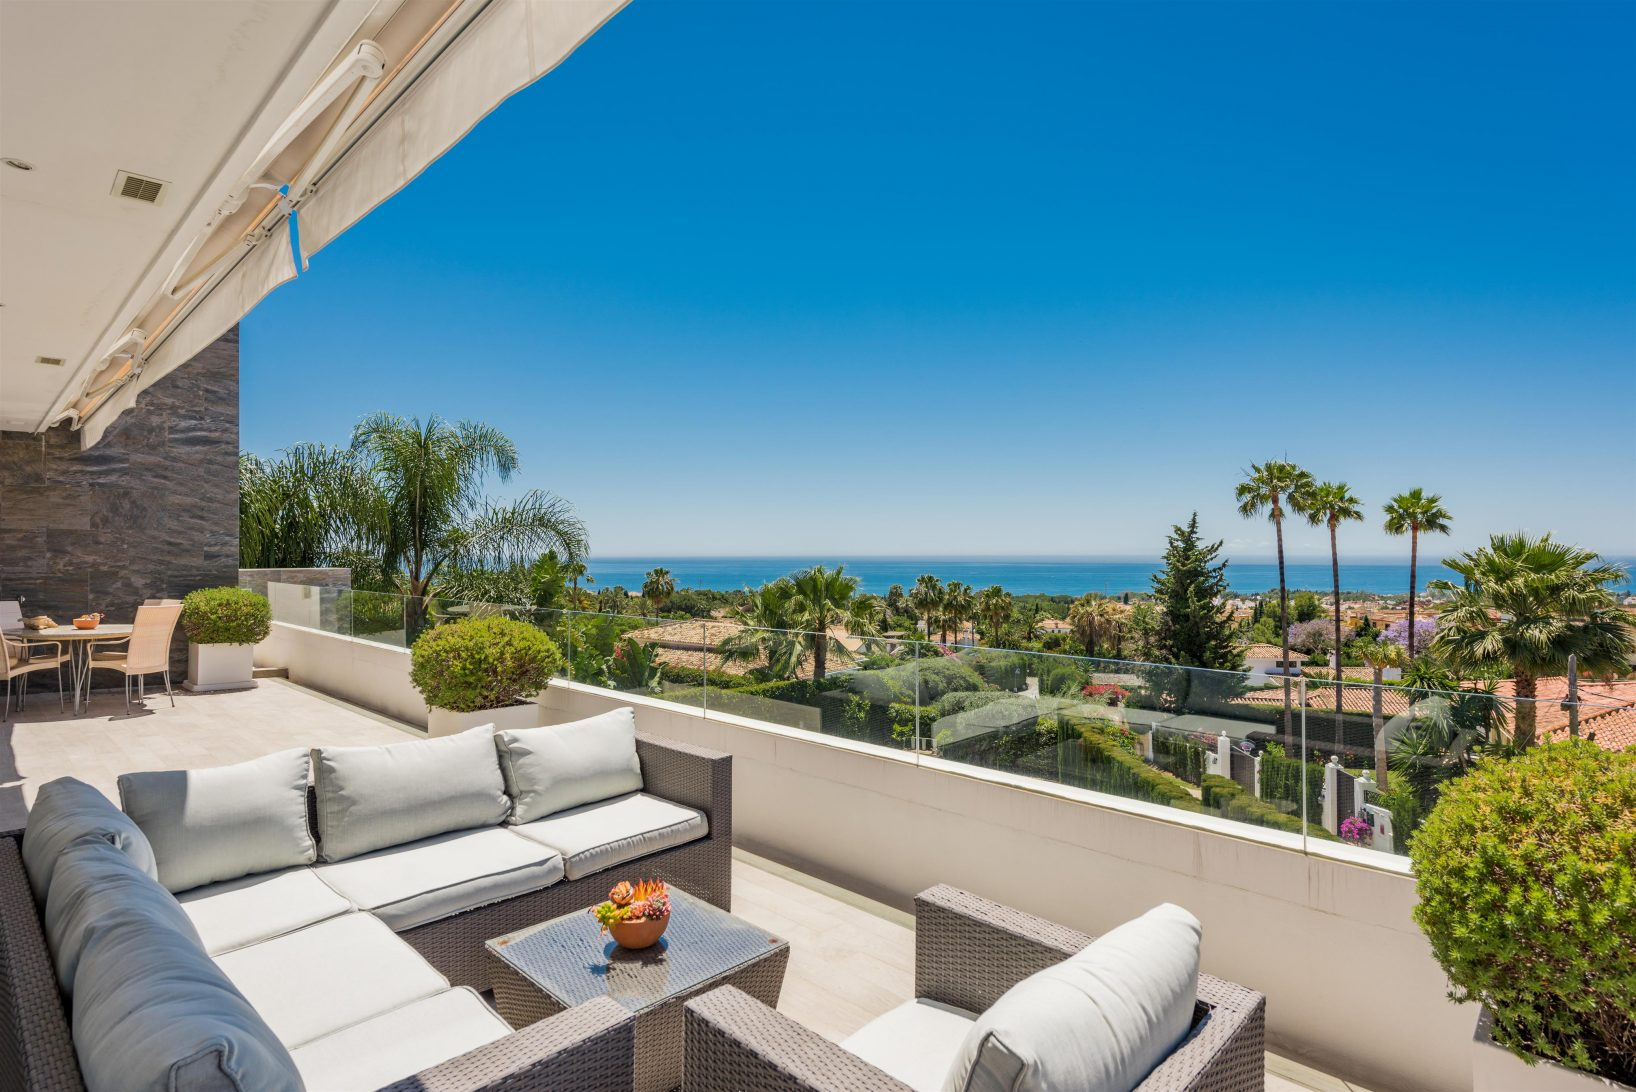 Nagüeles, an area full of possibilities on Marbella's Golden Mile